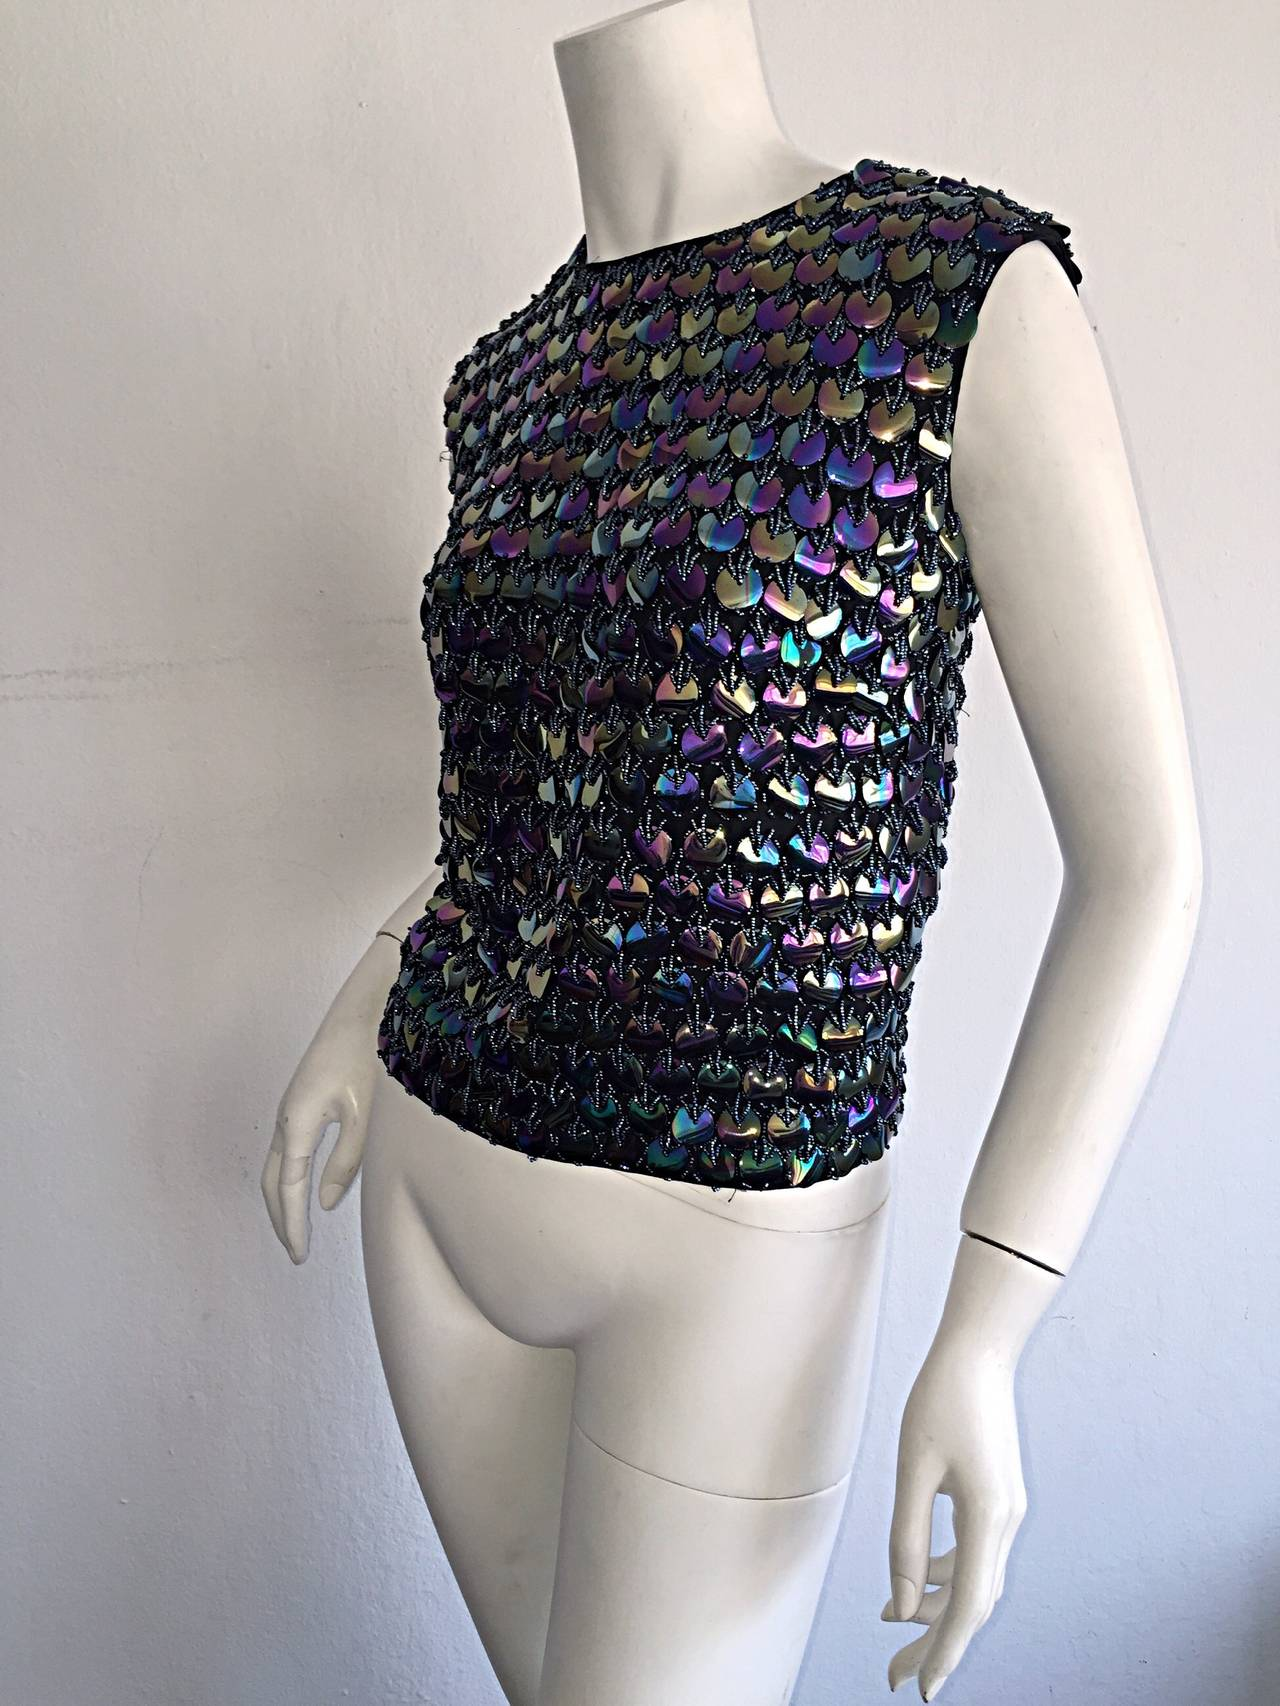 Fabulous 1950s Gene Shelly's Fully Beaded Iridescent Paillettes Silk Blouse Top 3